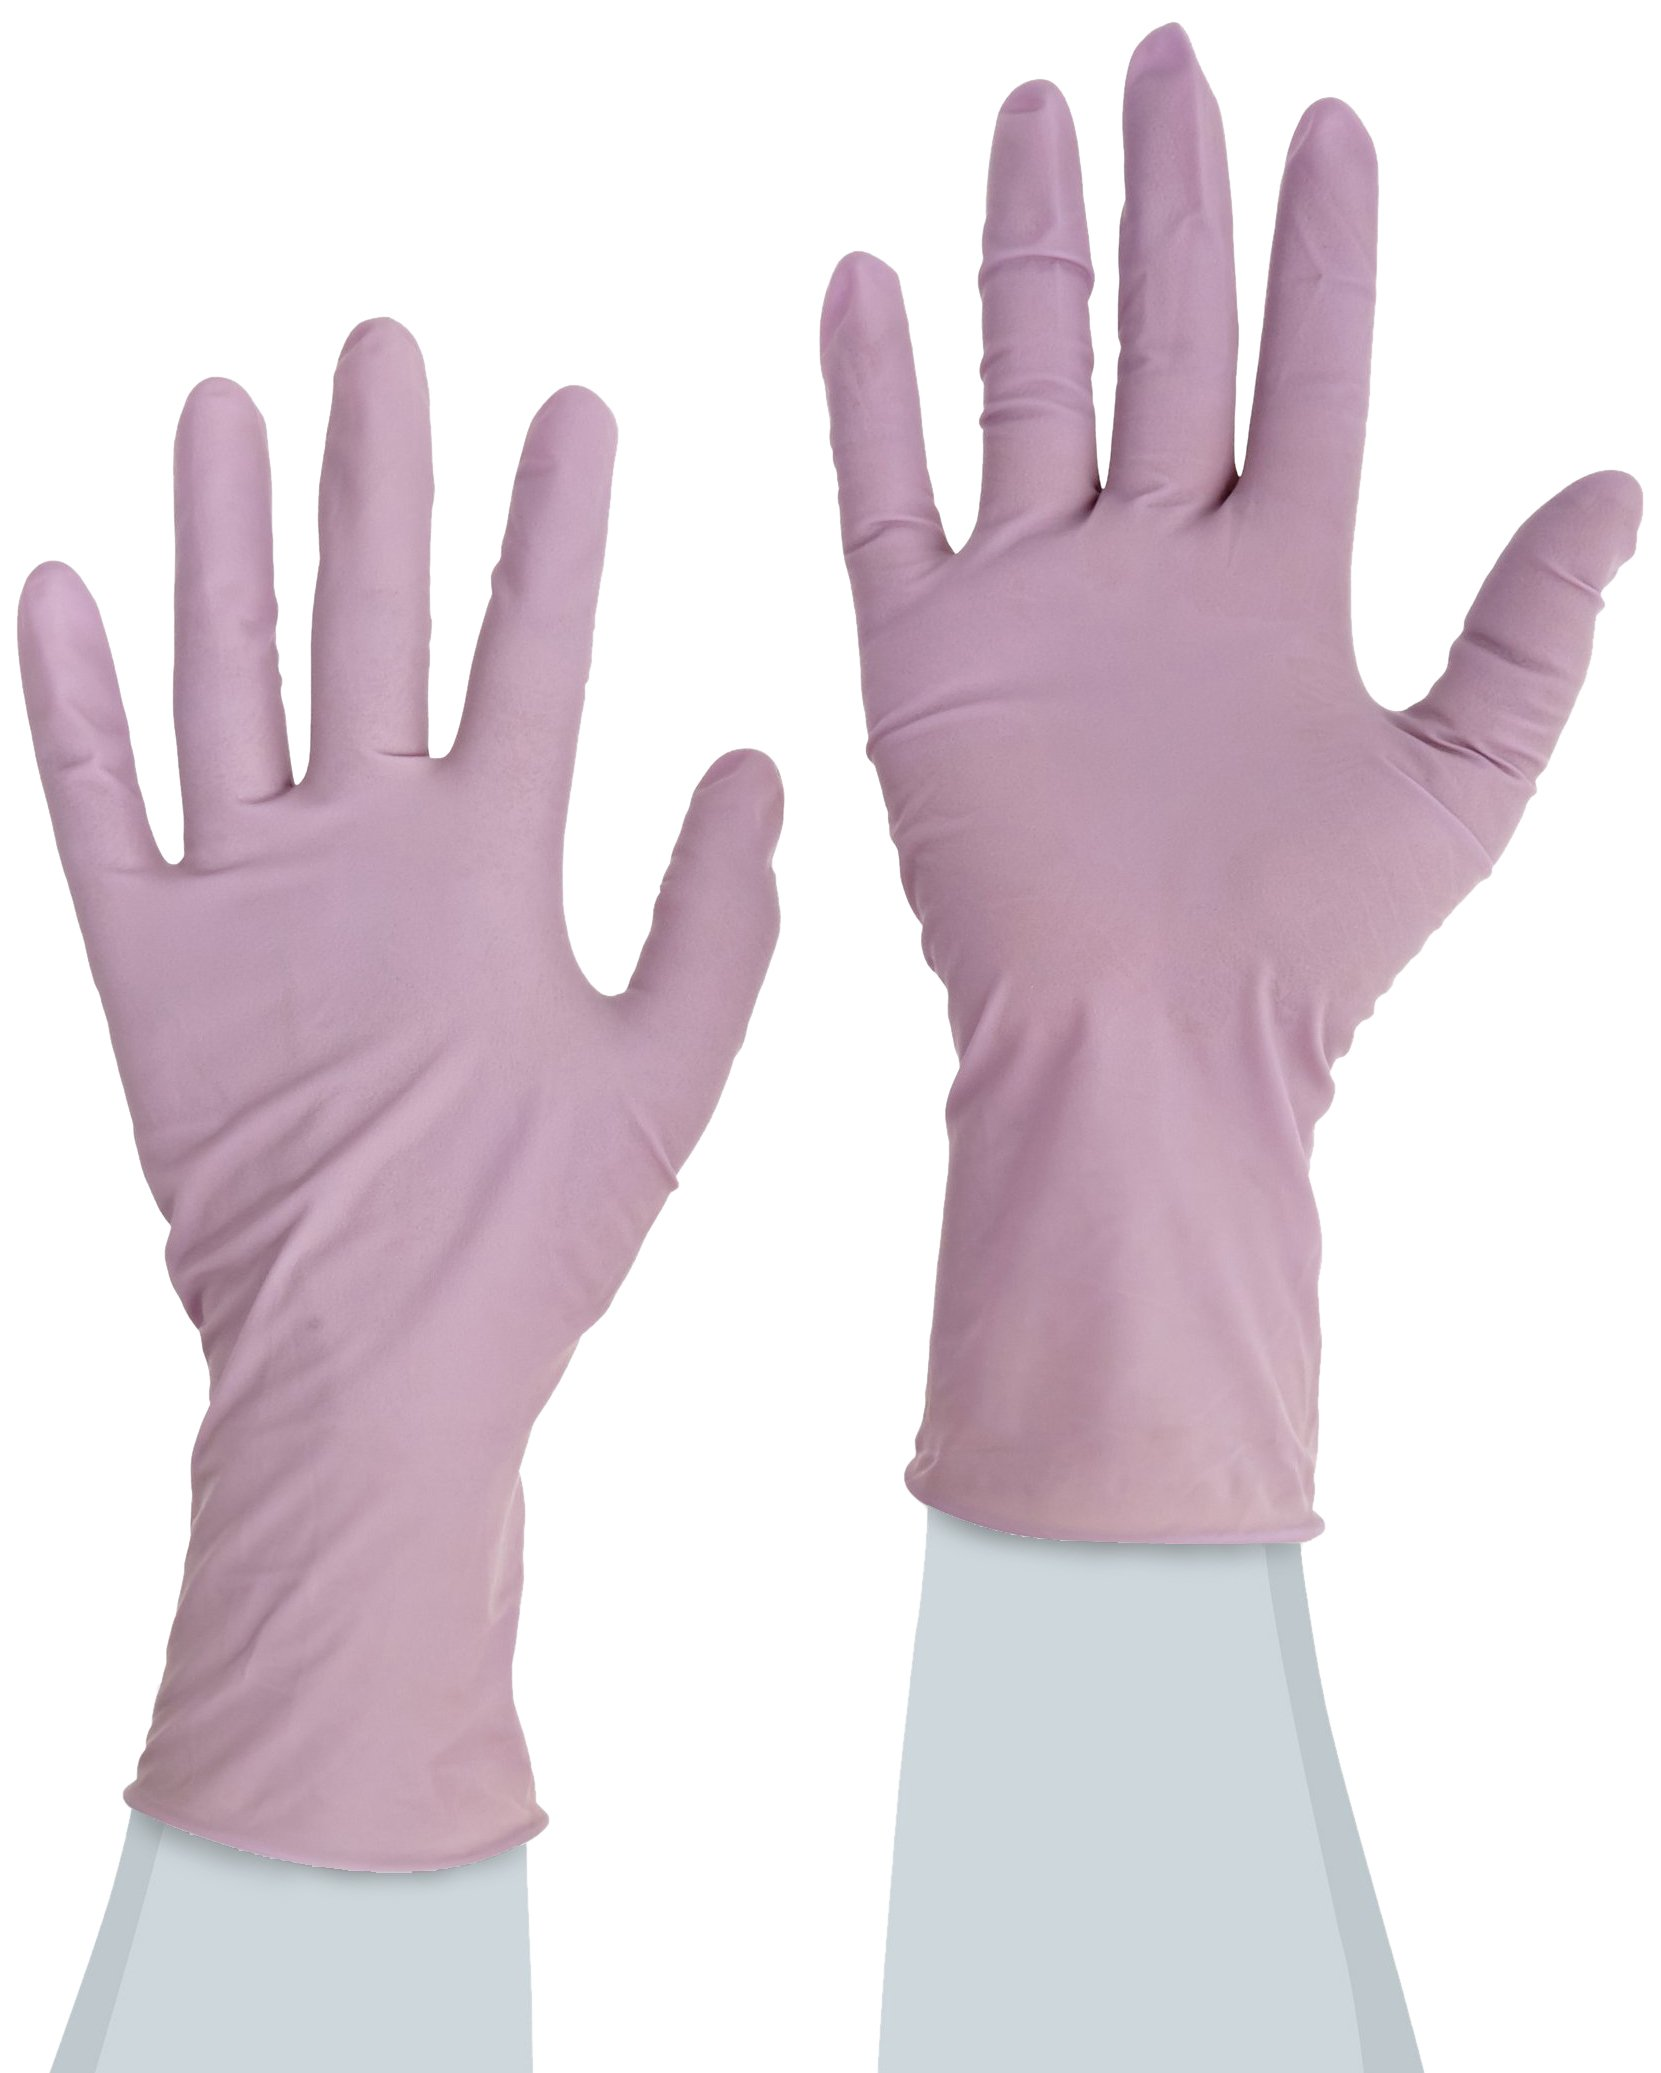 MAPA TRIlites 994 Tri-Polymer Glove, Disposable, 0.006'' Thickness, 10'' Length, Medium, Purple (Box of 100)